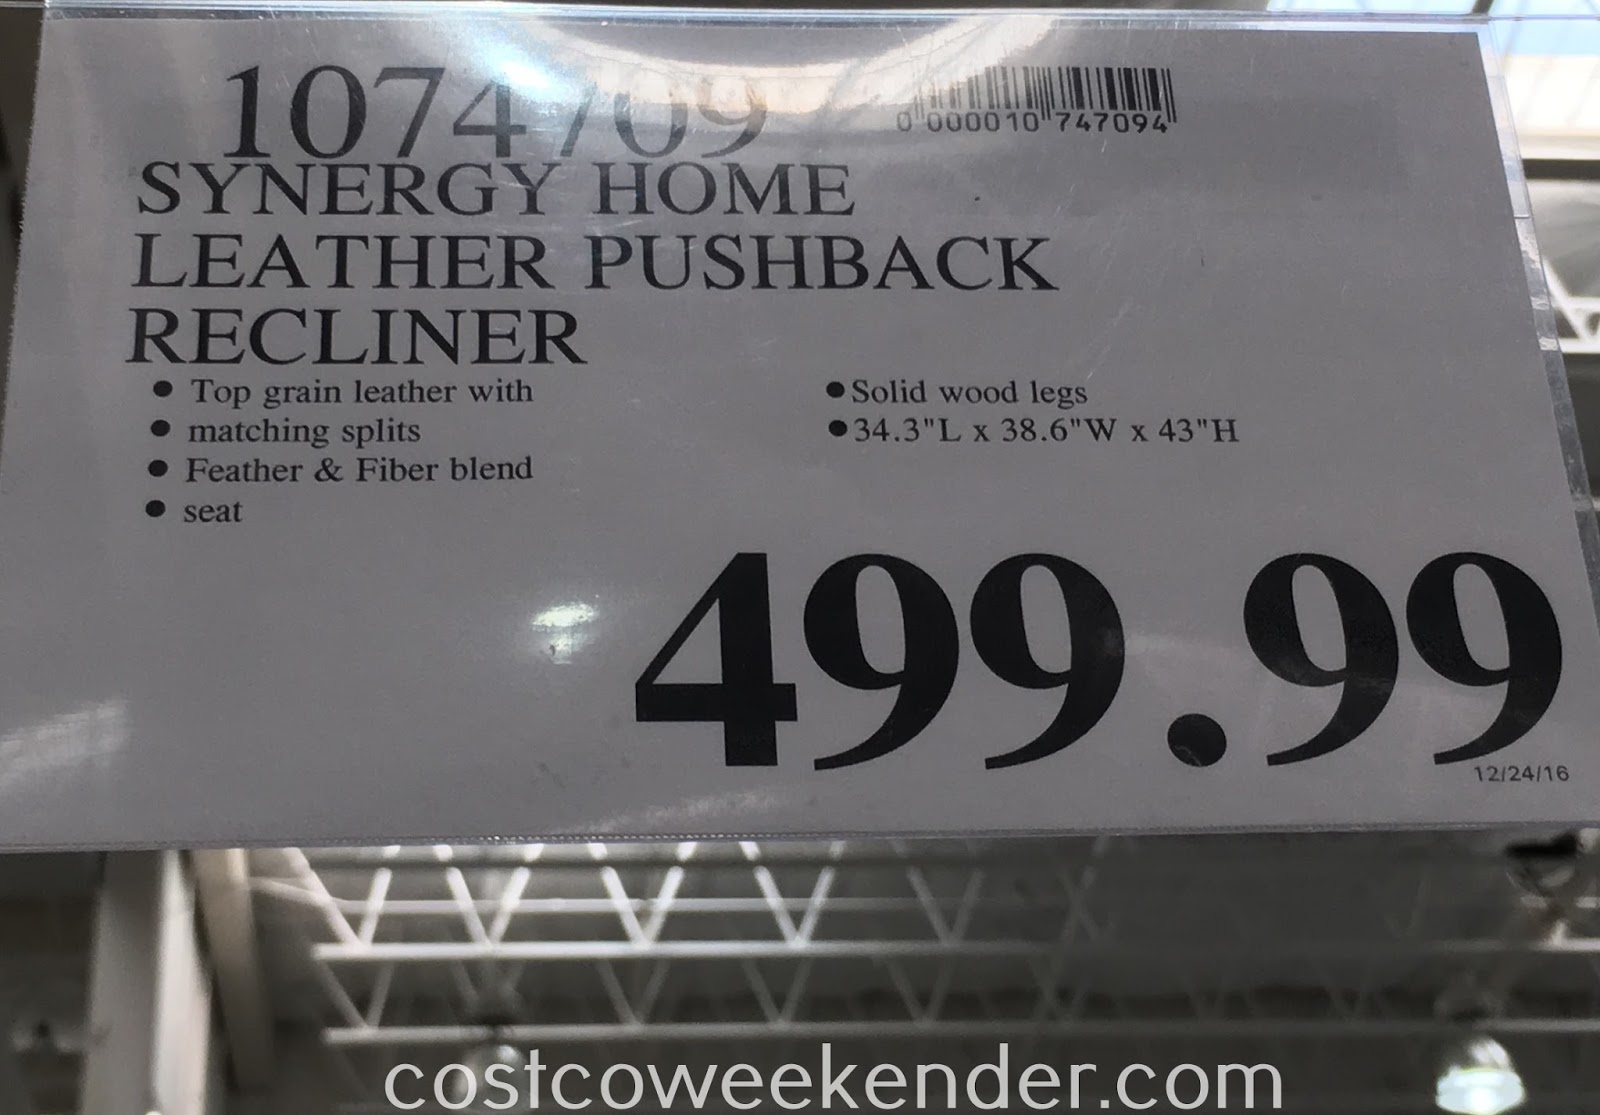 Deal for the Synergy Home Leather Pushback Recliner Chair at Costco